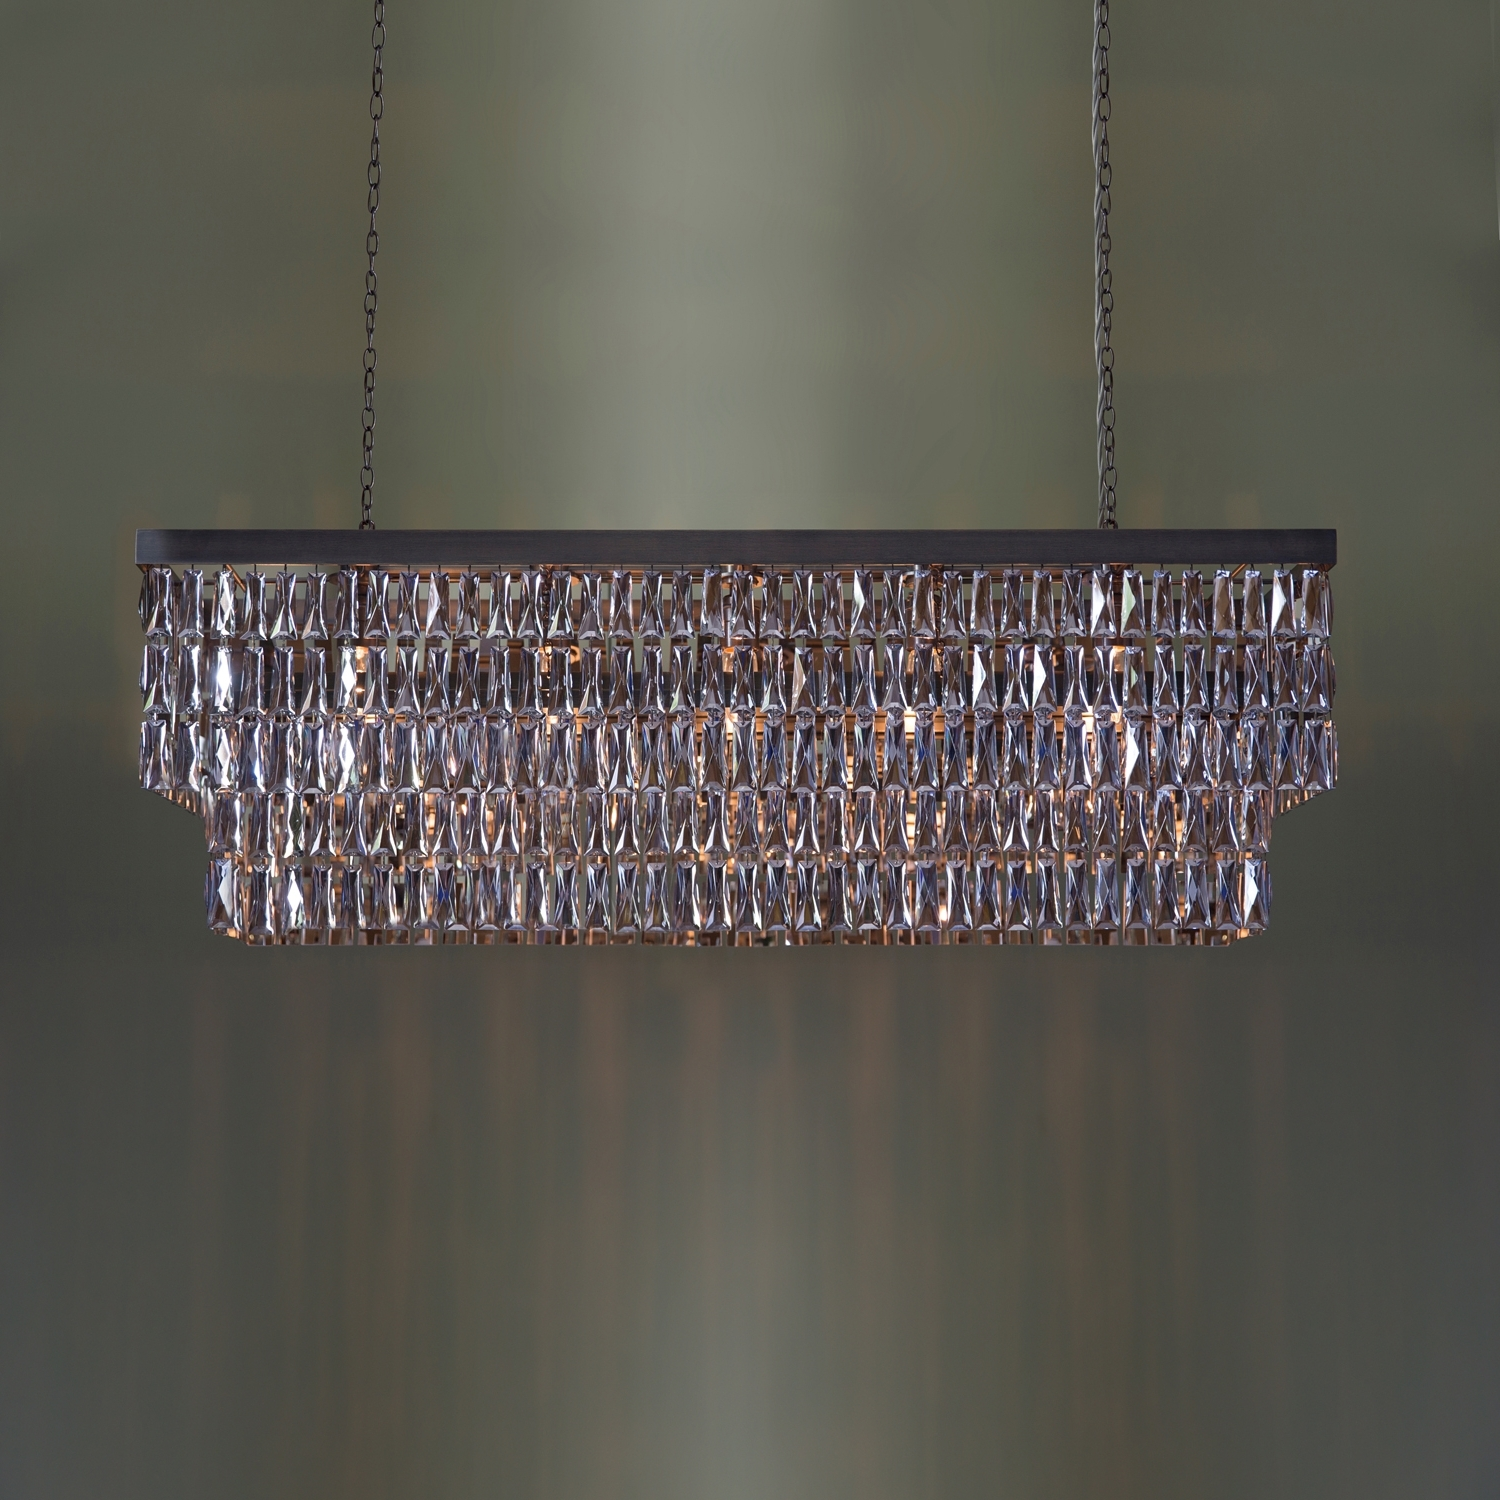 Famous Mirrored Crystal Rectangular Chandelier – Tigermoth Lighting With Regard To Mirrored Chandelier (View 4 of 15)